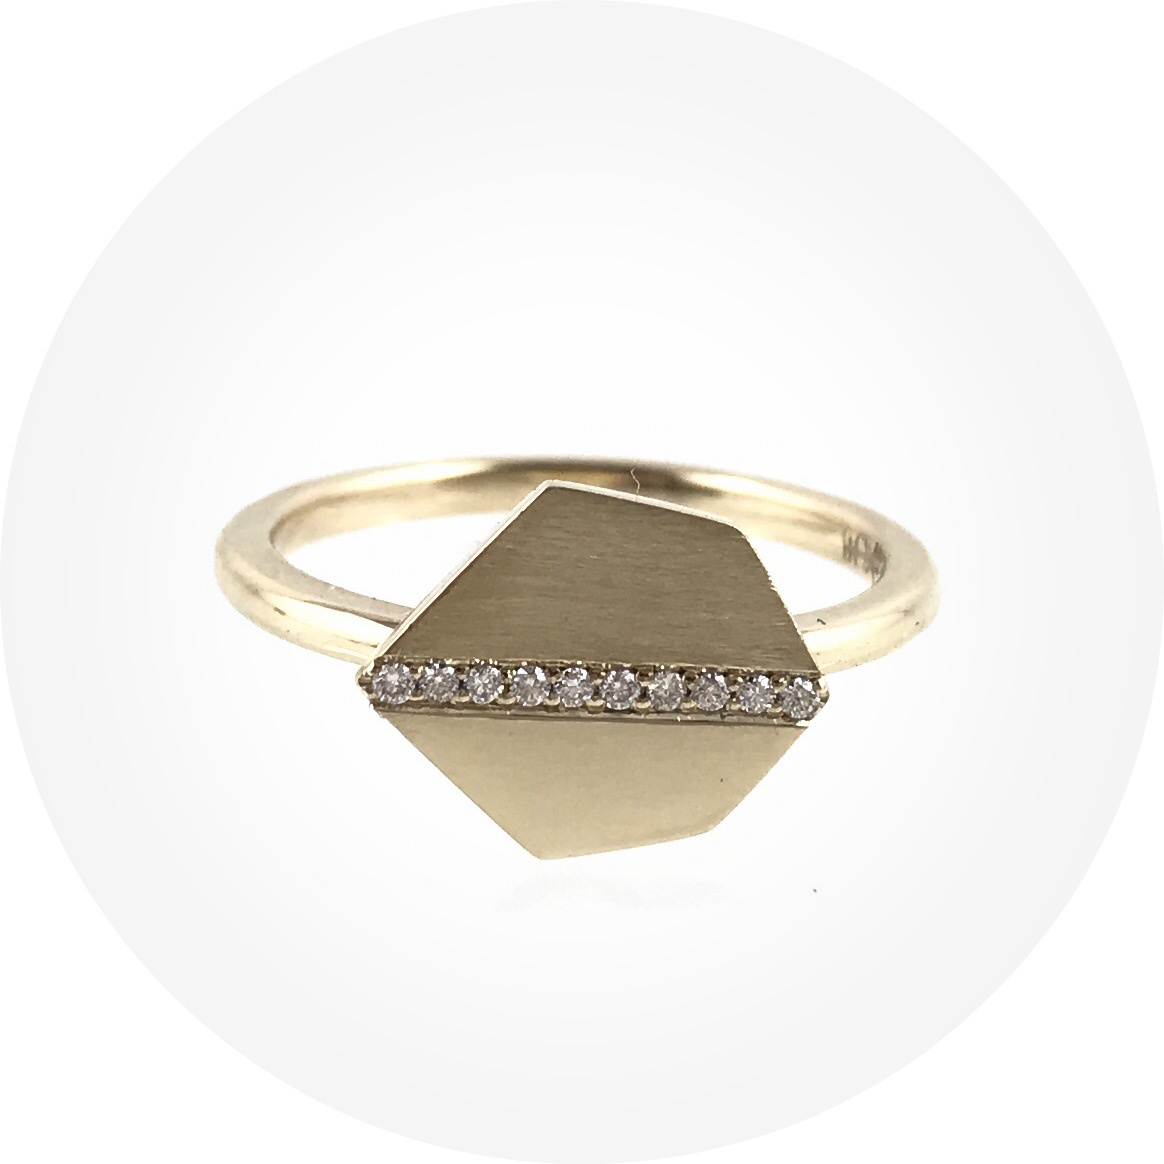 Angela Natalier-All in a row ring, 9ct yellow gold, white diamonds. size O1/2